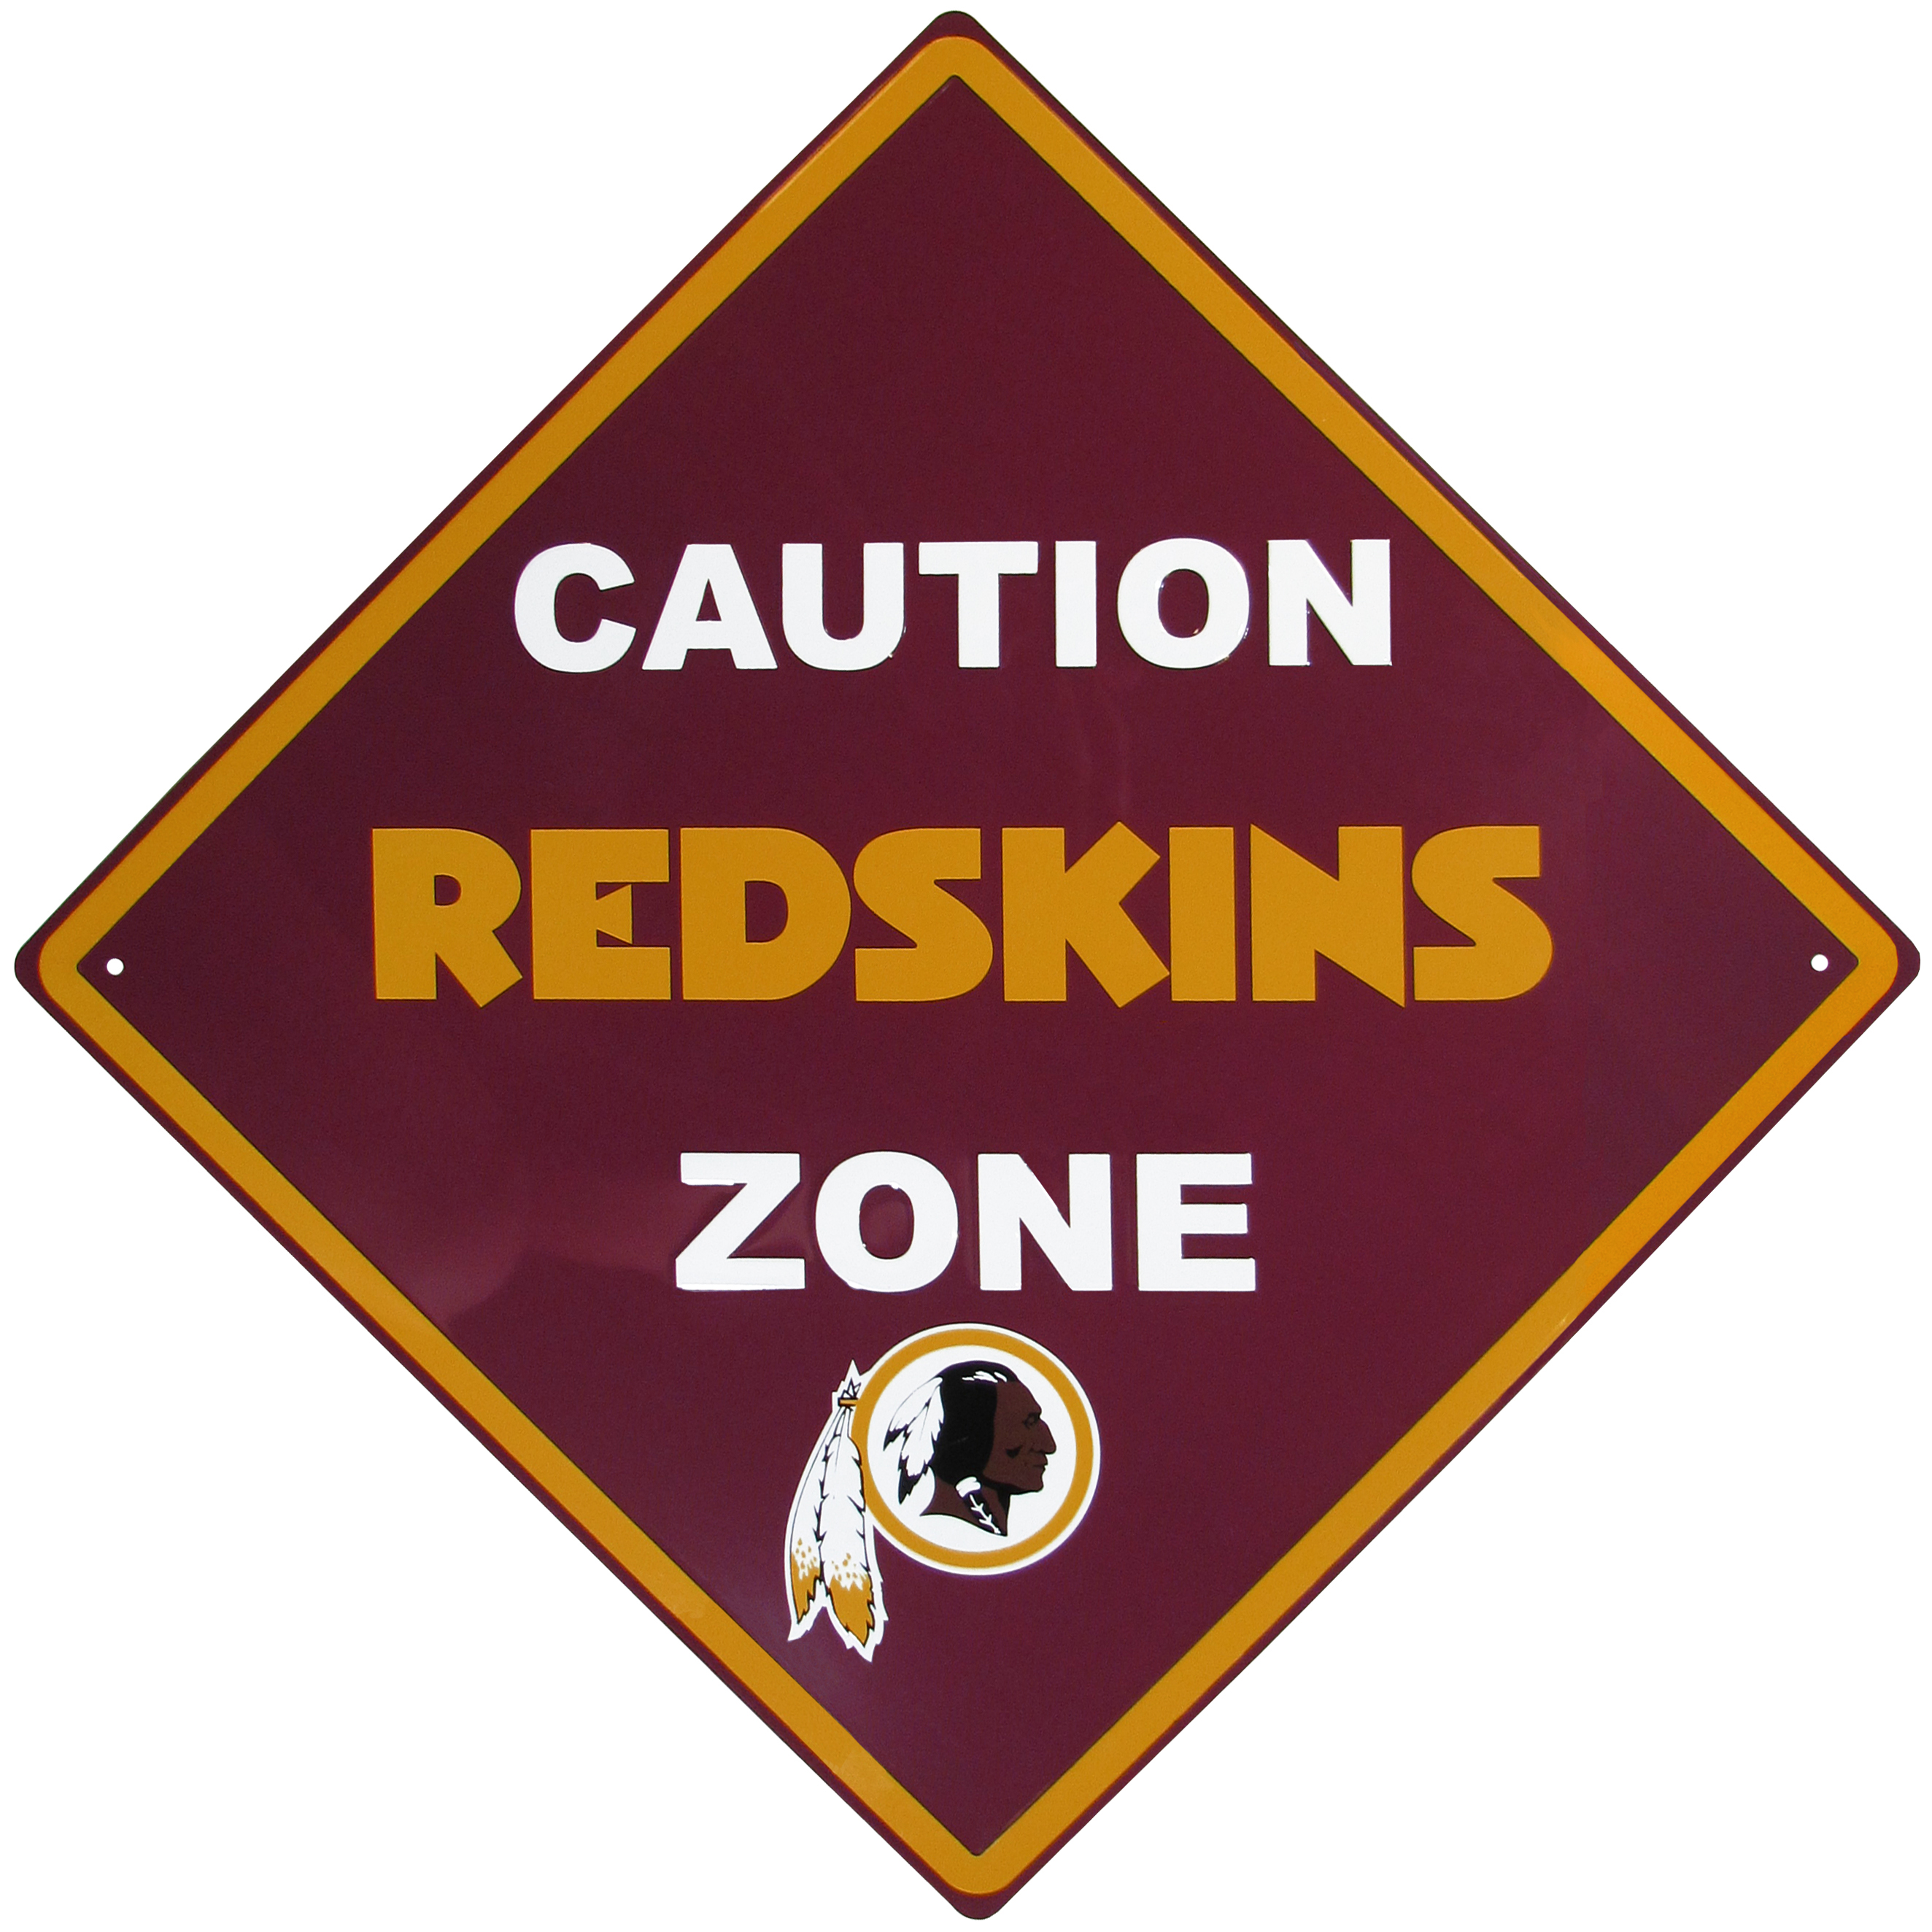 Washington Redskins Caution Wall Sign Plaque - Let everyone know that they are entering Washington Redskins territory! Our 14 inch caution wall plaques are a the perfect way to convert any room into a fan cave! The light-weight aluminum signs mount easily to any wall and are perfect for the home or office.